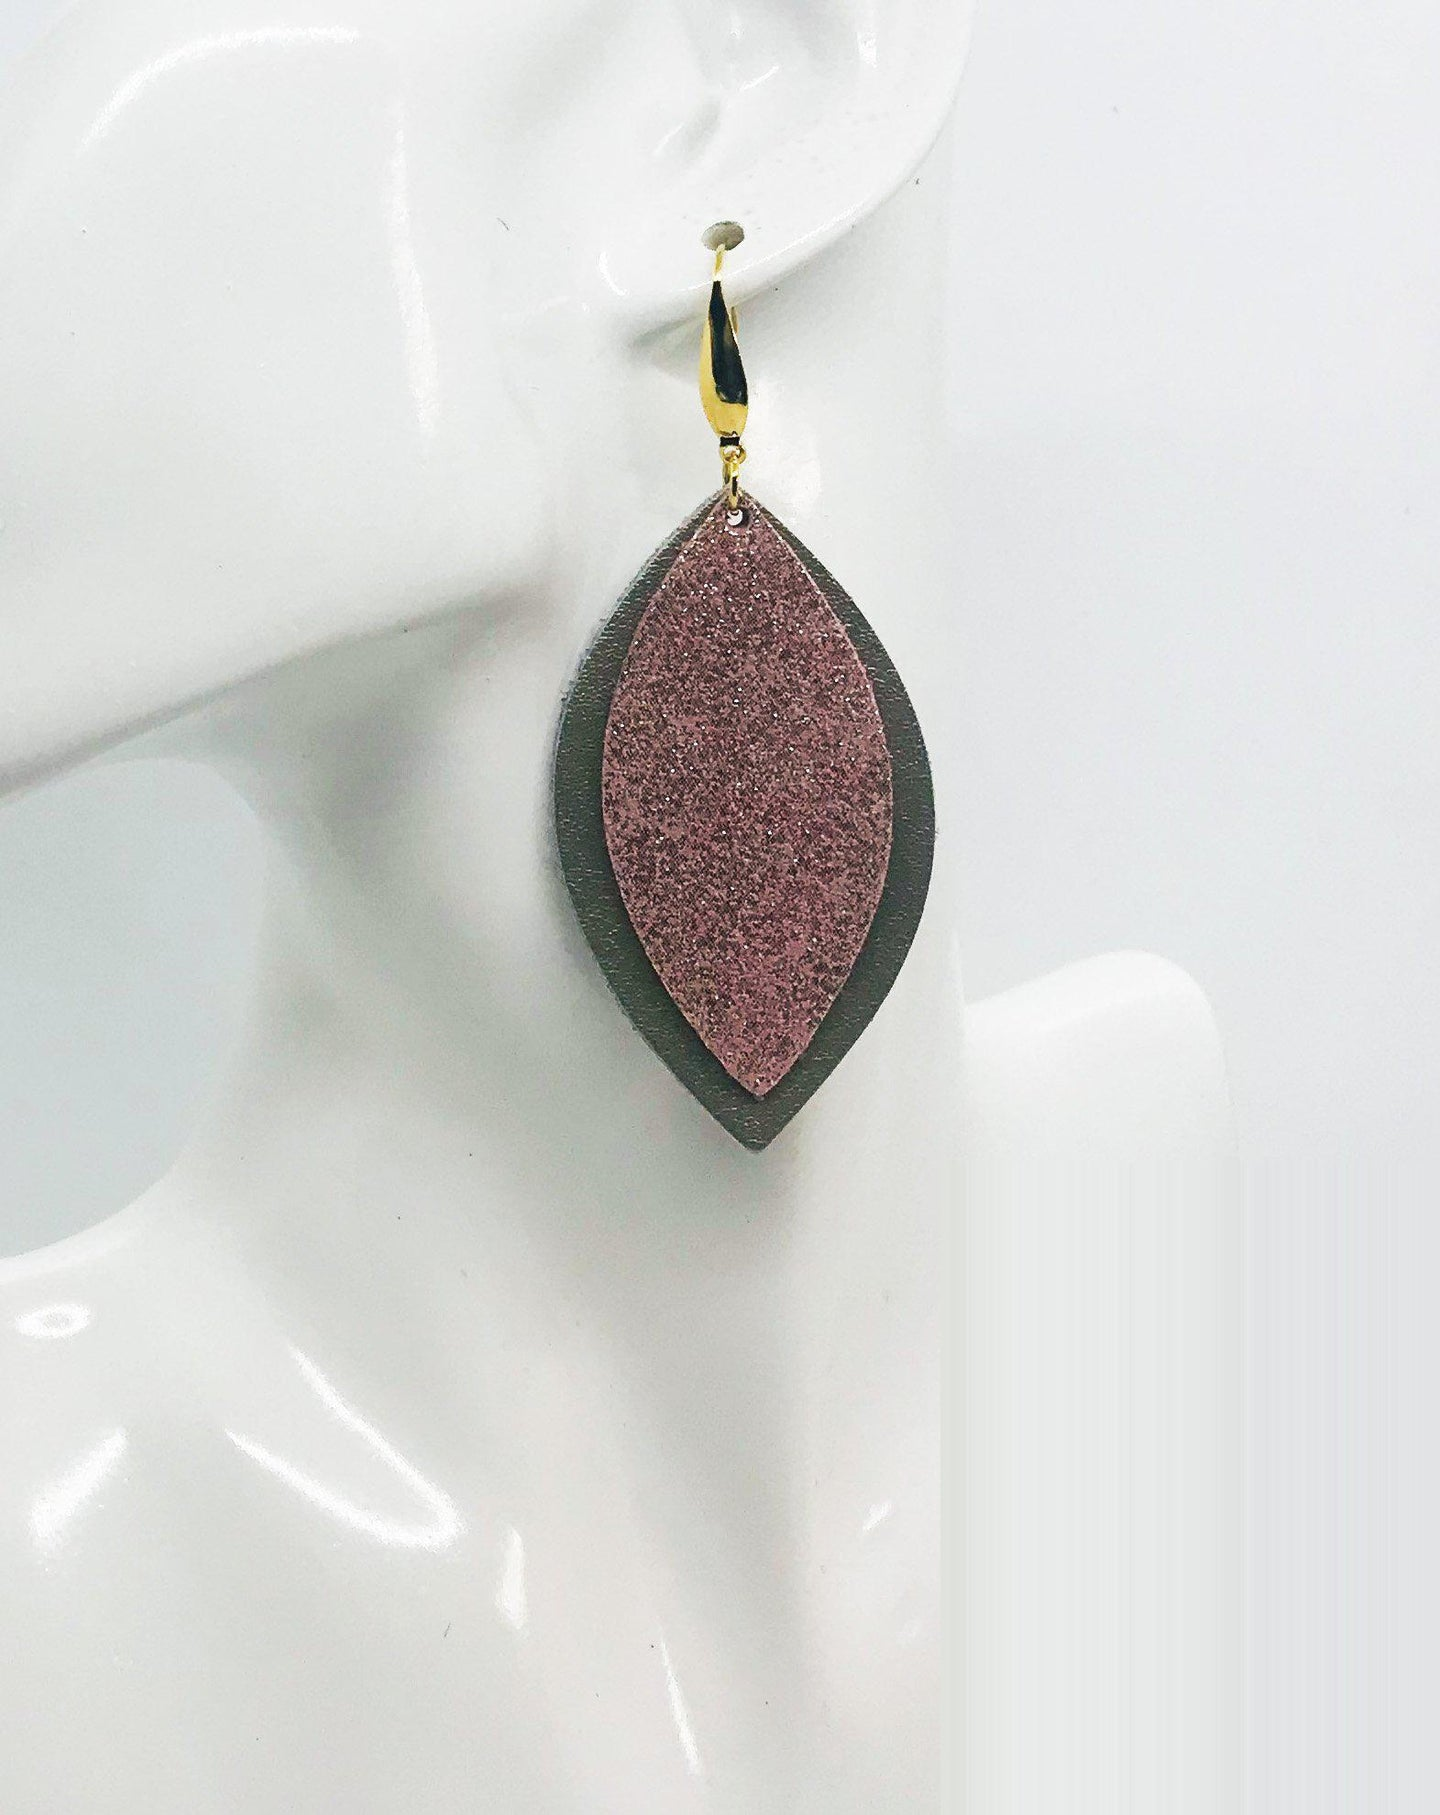 Metalic Gold and Rose Gold Leather Earrings - E19-1451